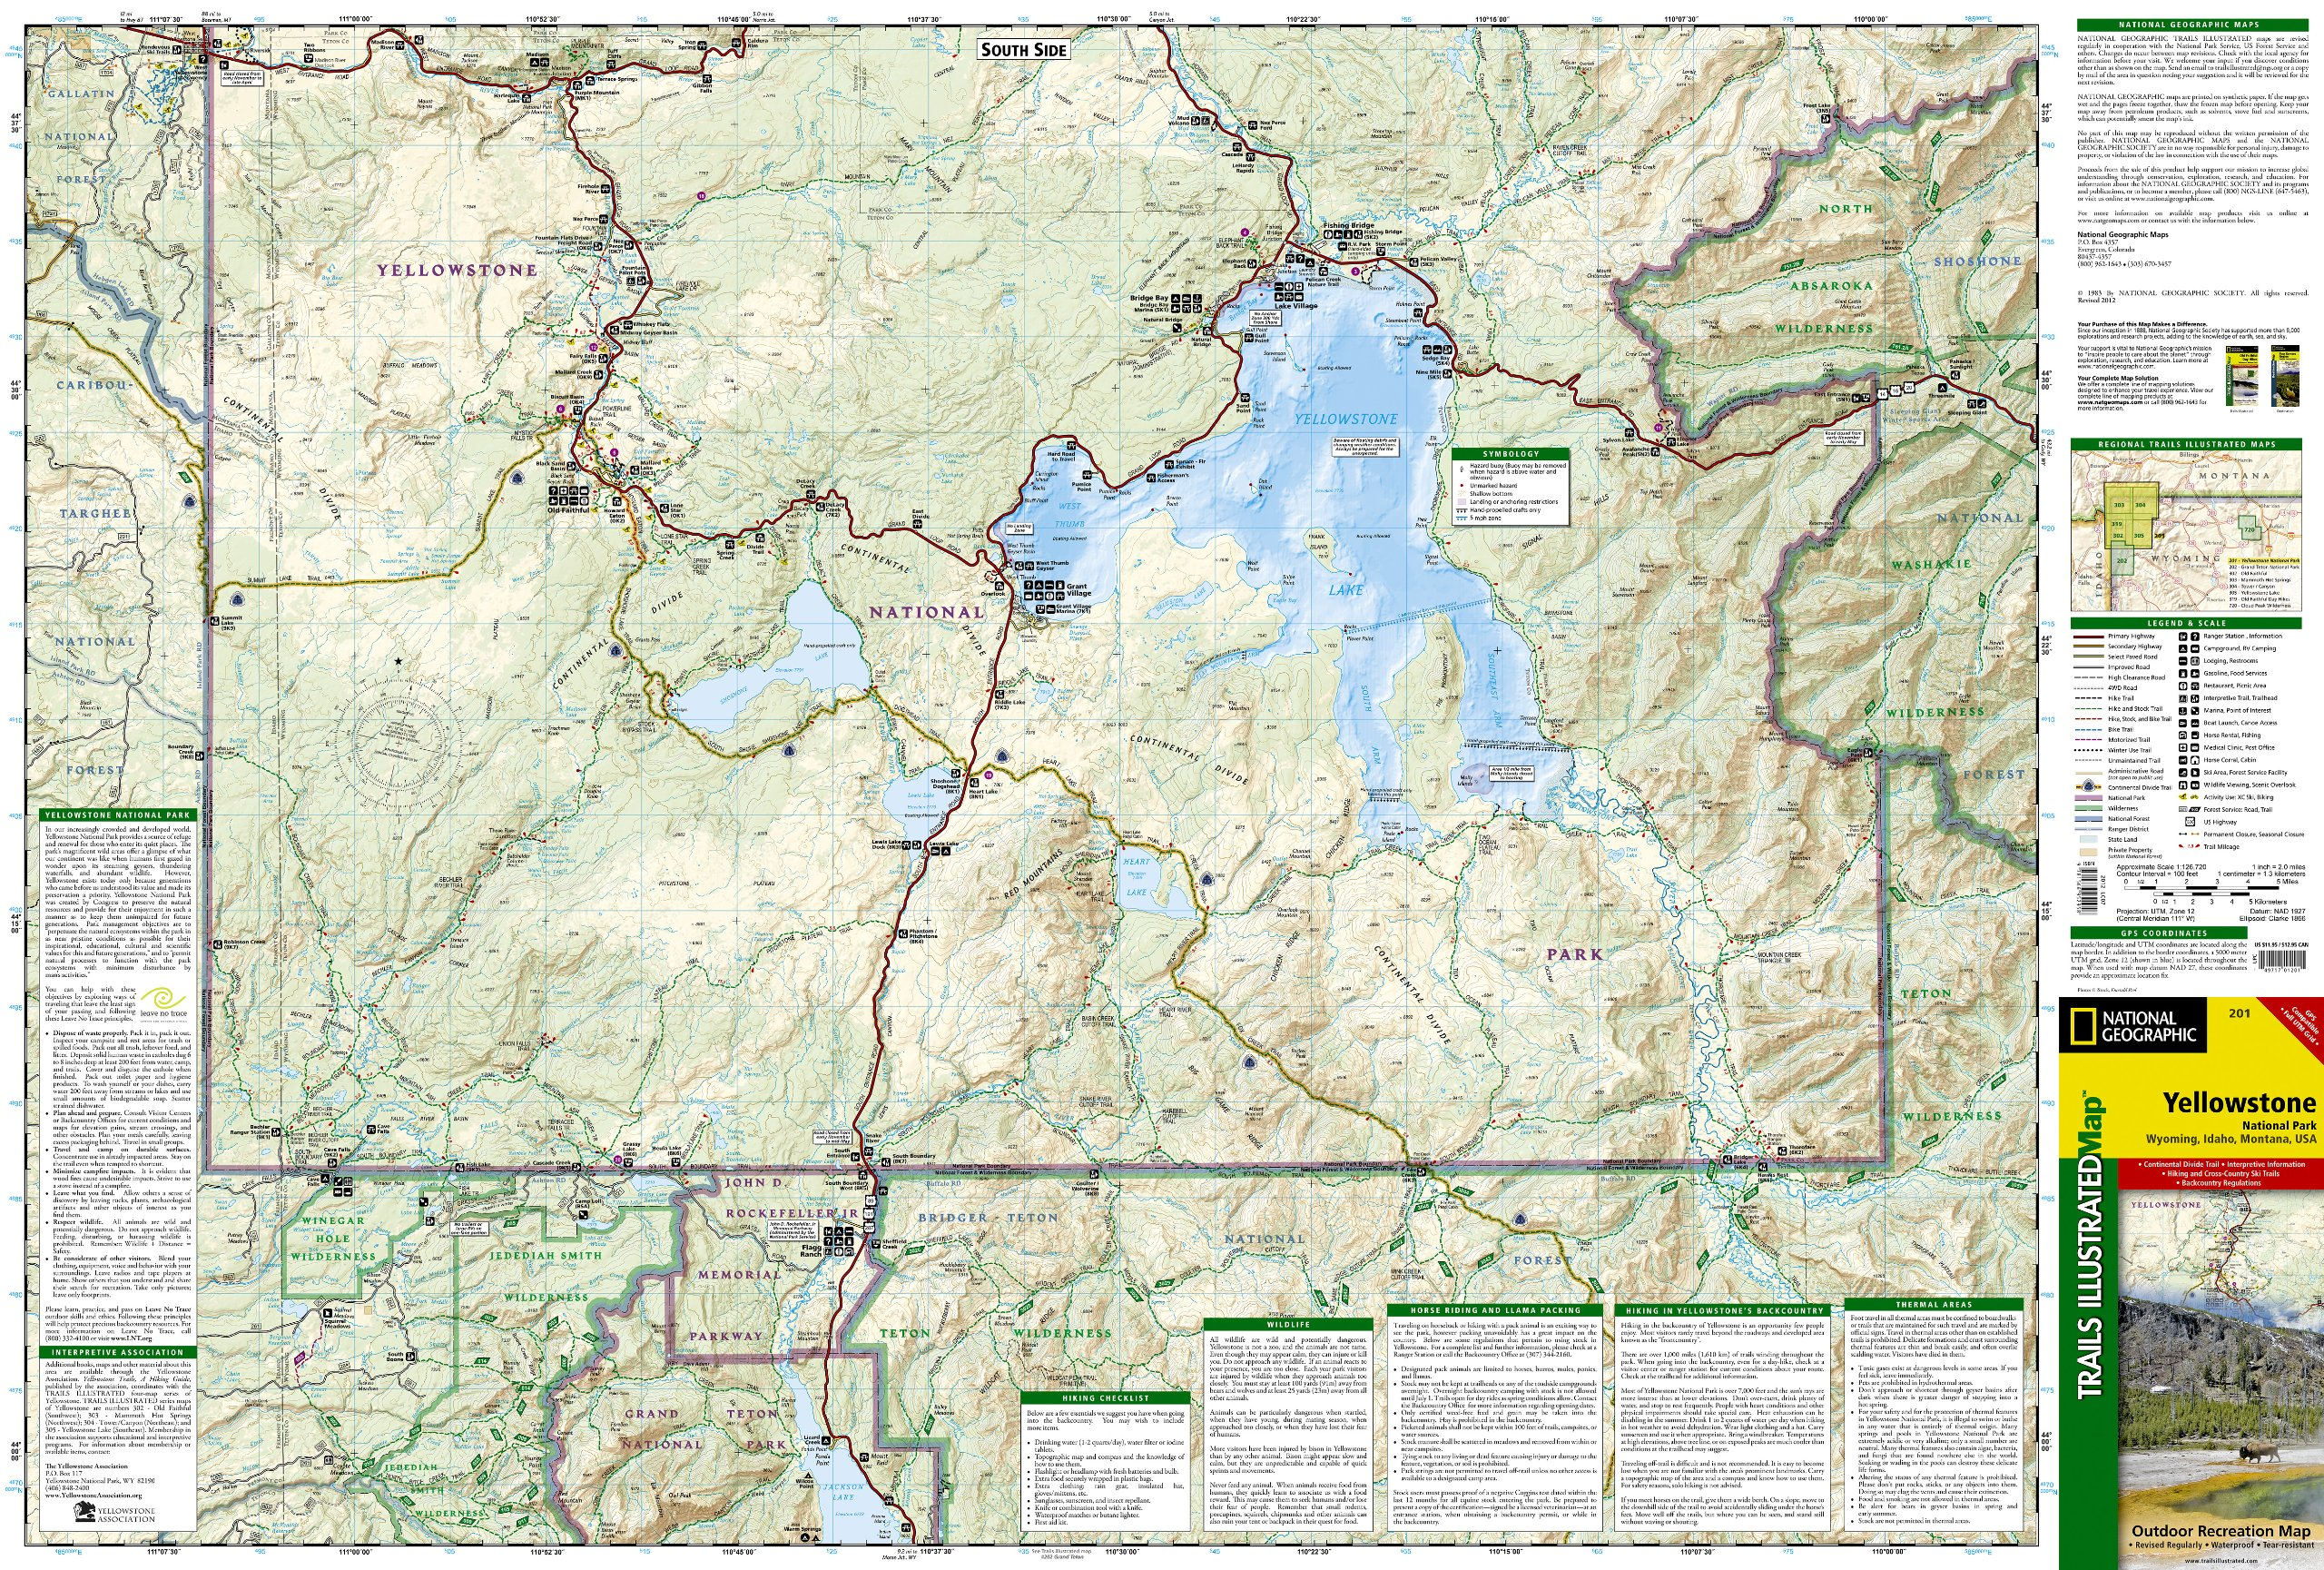 Yellowstone Trails Illustrated Map NP201 GPS Compatible Amazon